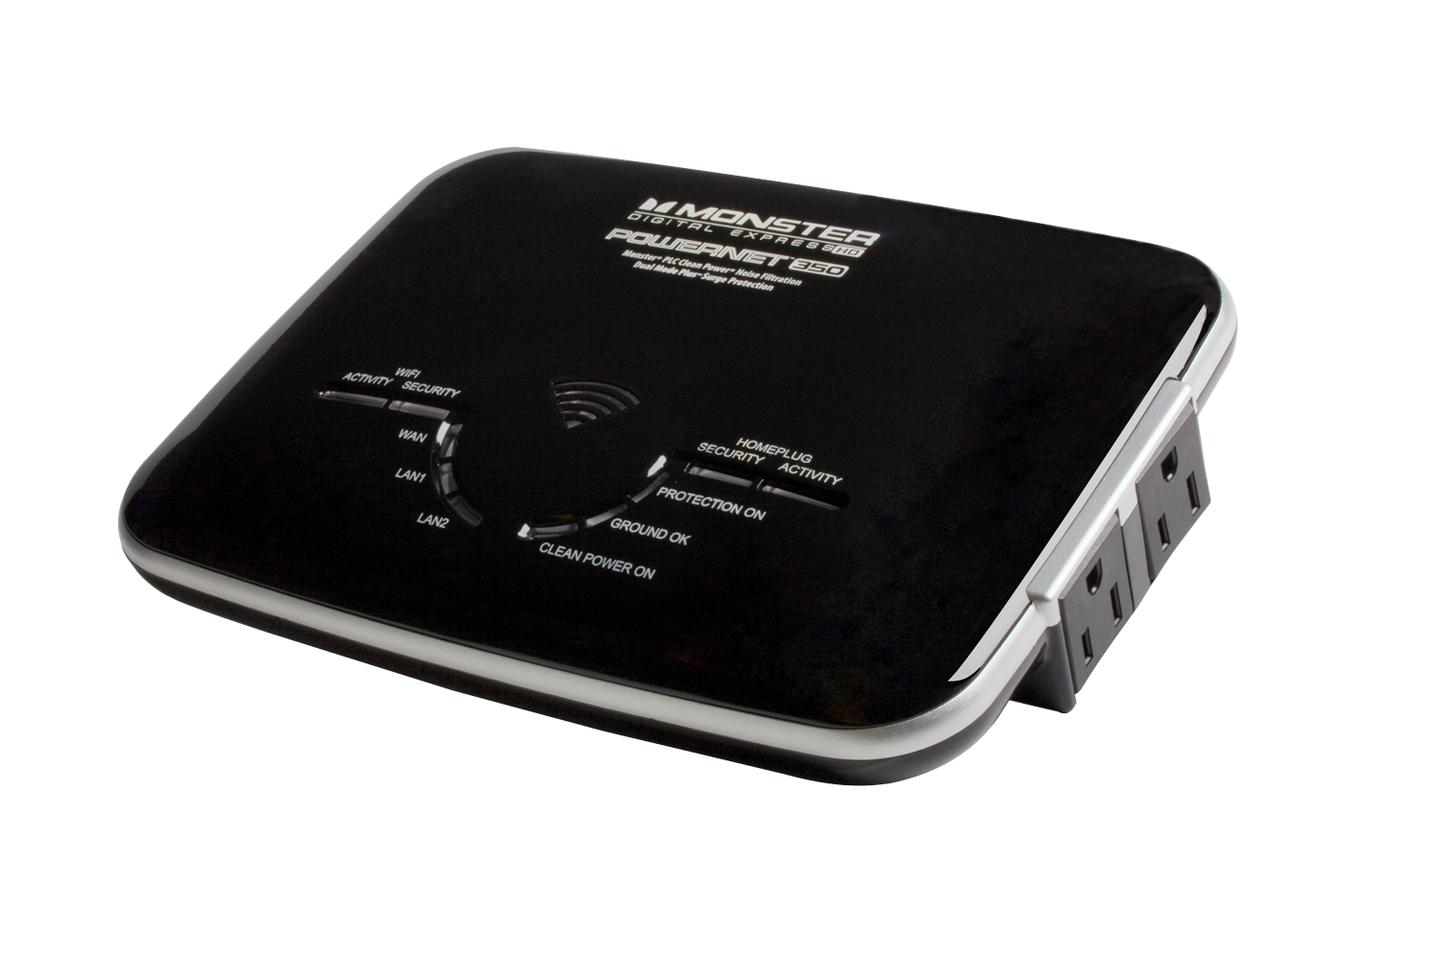 """Monster's new Powernet 1G offers a unique """"no new wires"""" networking solution and provides speeds fast enough to reliably support multiple 1080p datastreams"""